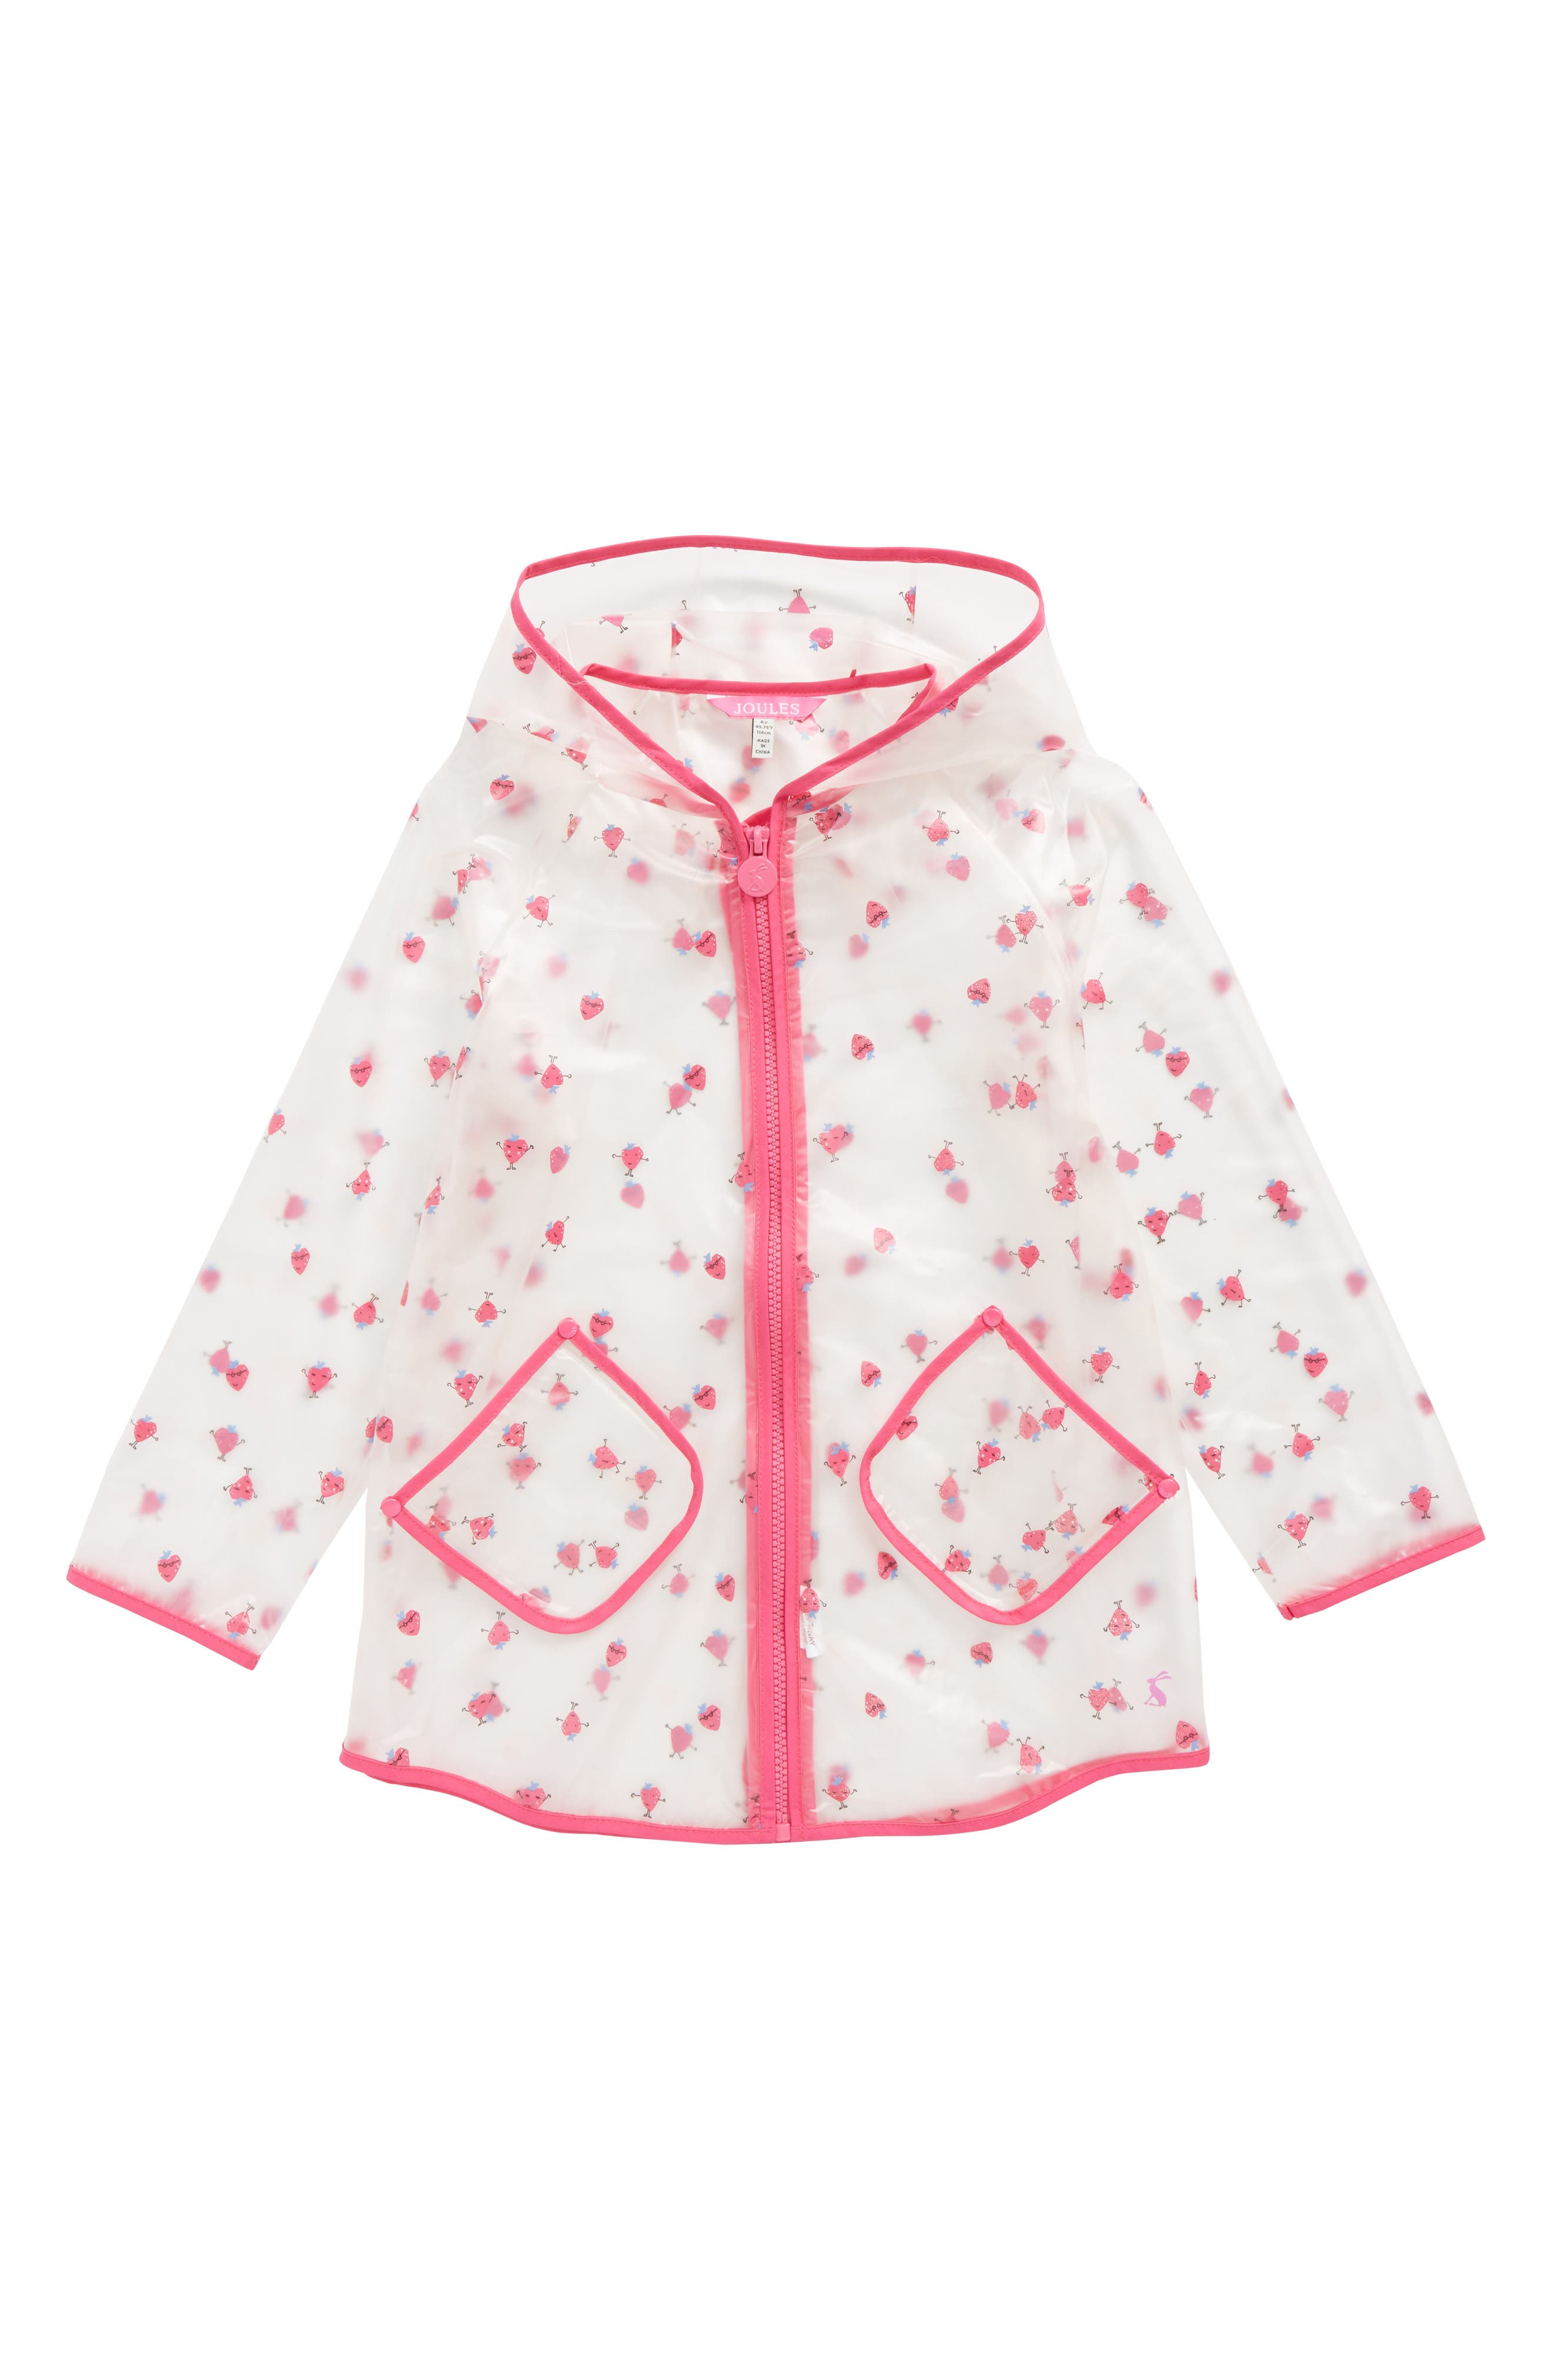 Print Sheer Rain Coat,                             Main thumbnail 1, color,                             107